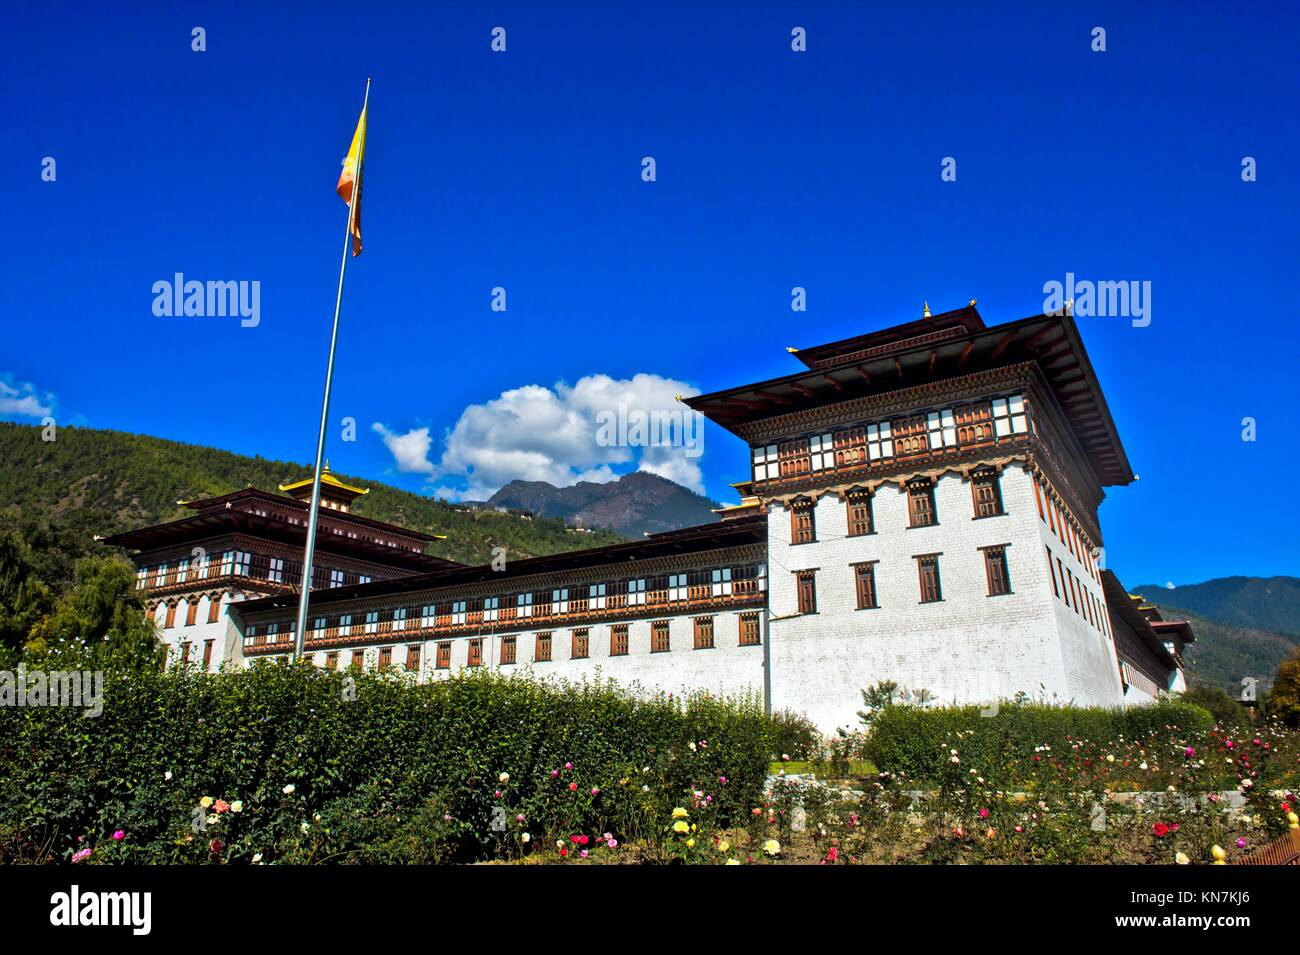 Seat of government Thimphu Dzong or Trashi Chhoe Dzong in the traditional architecural style, Thimphu, Bhutan. Stock Photo